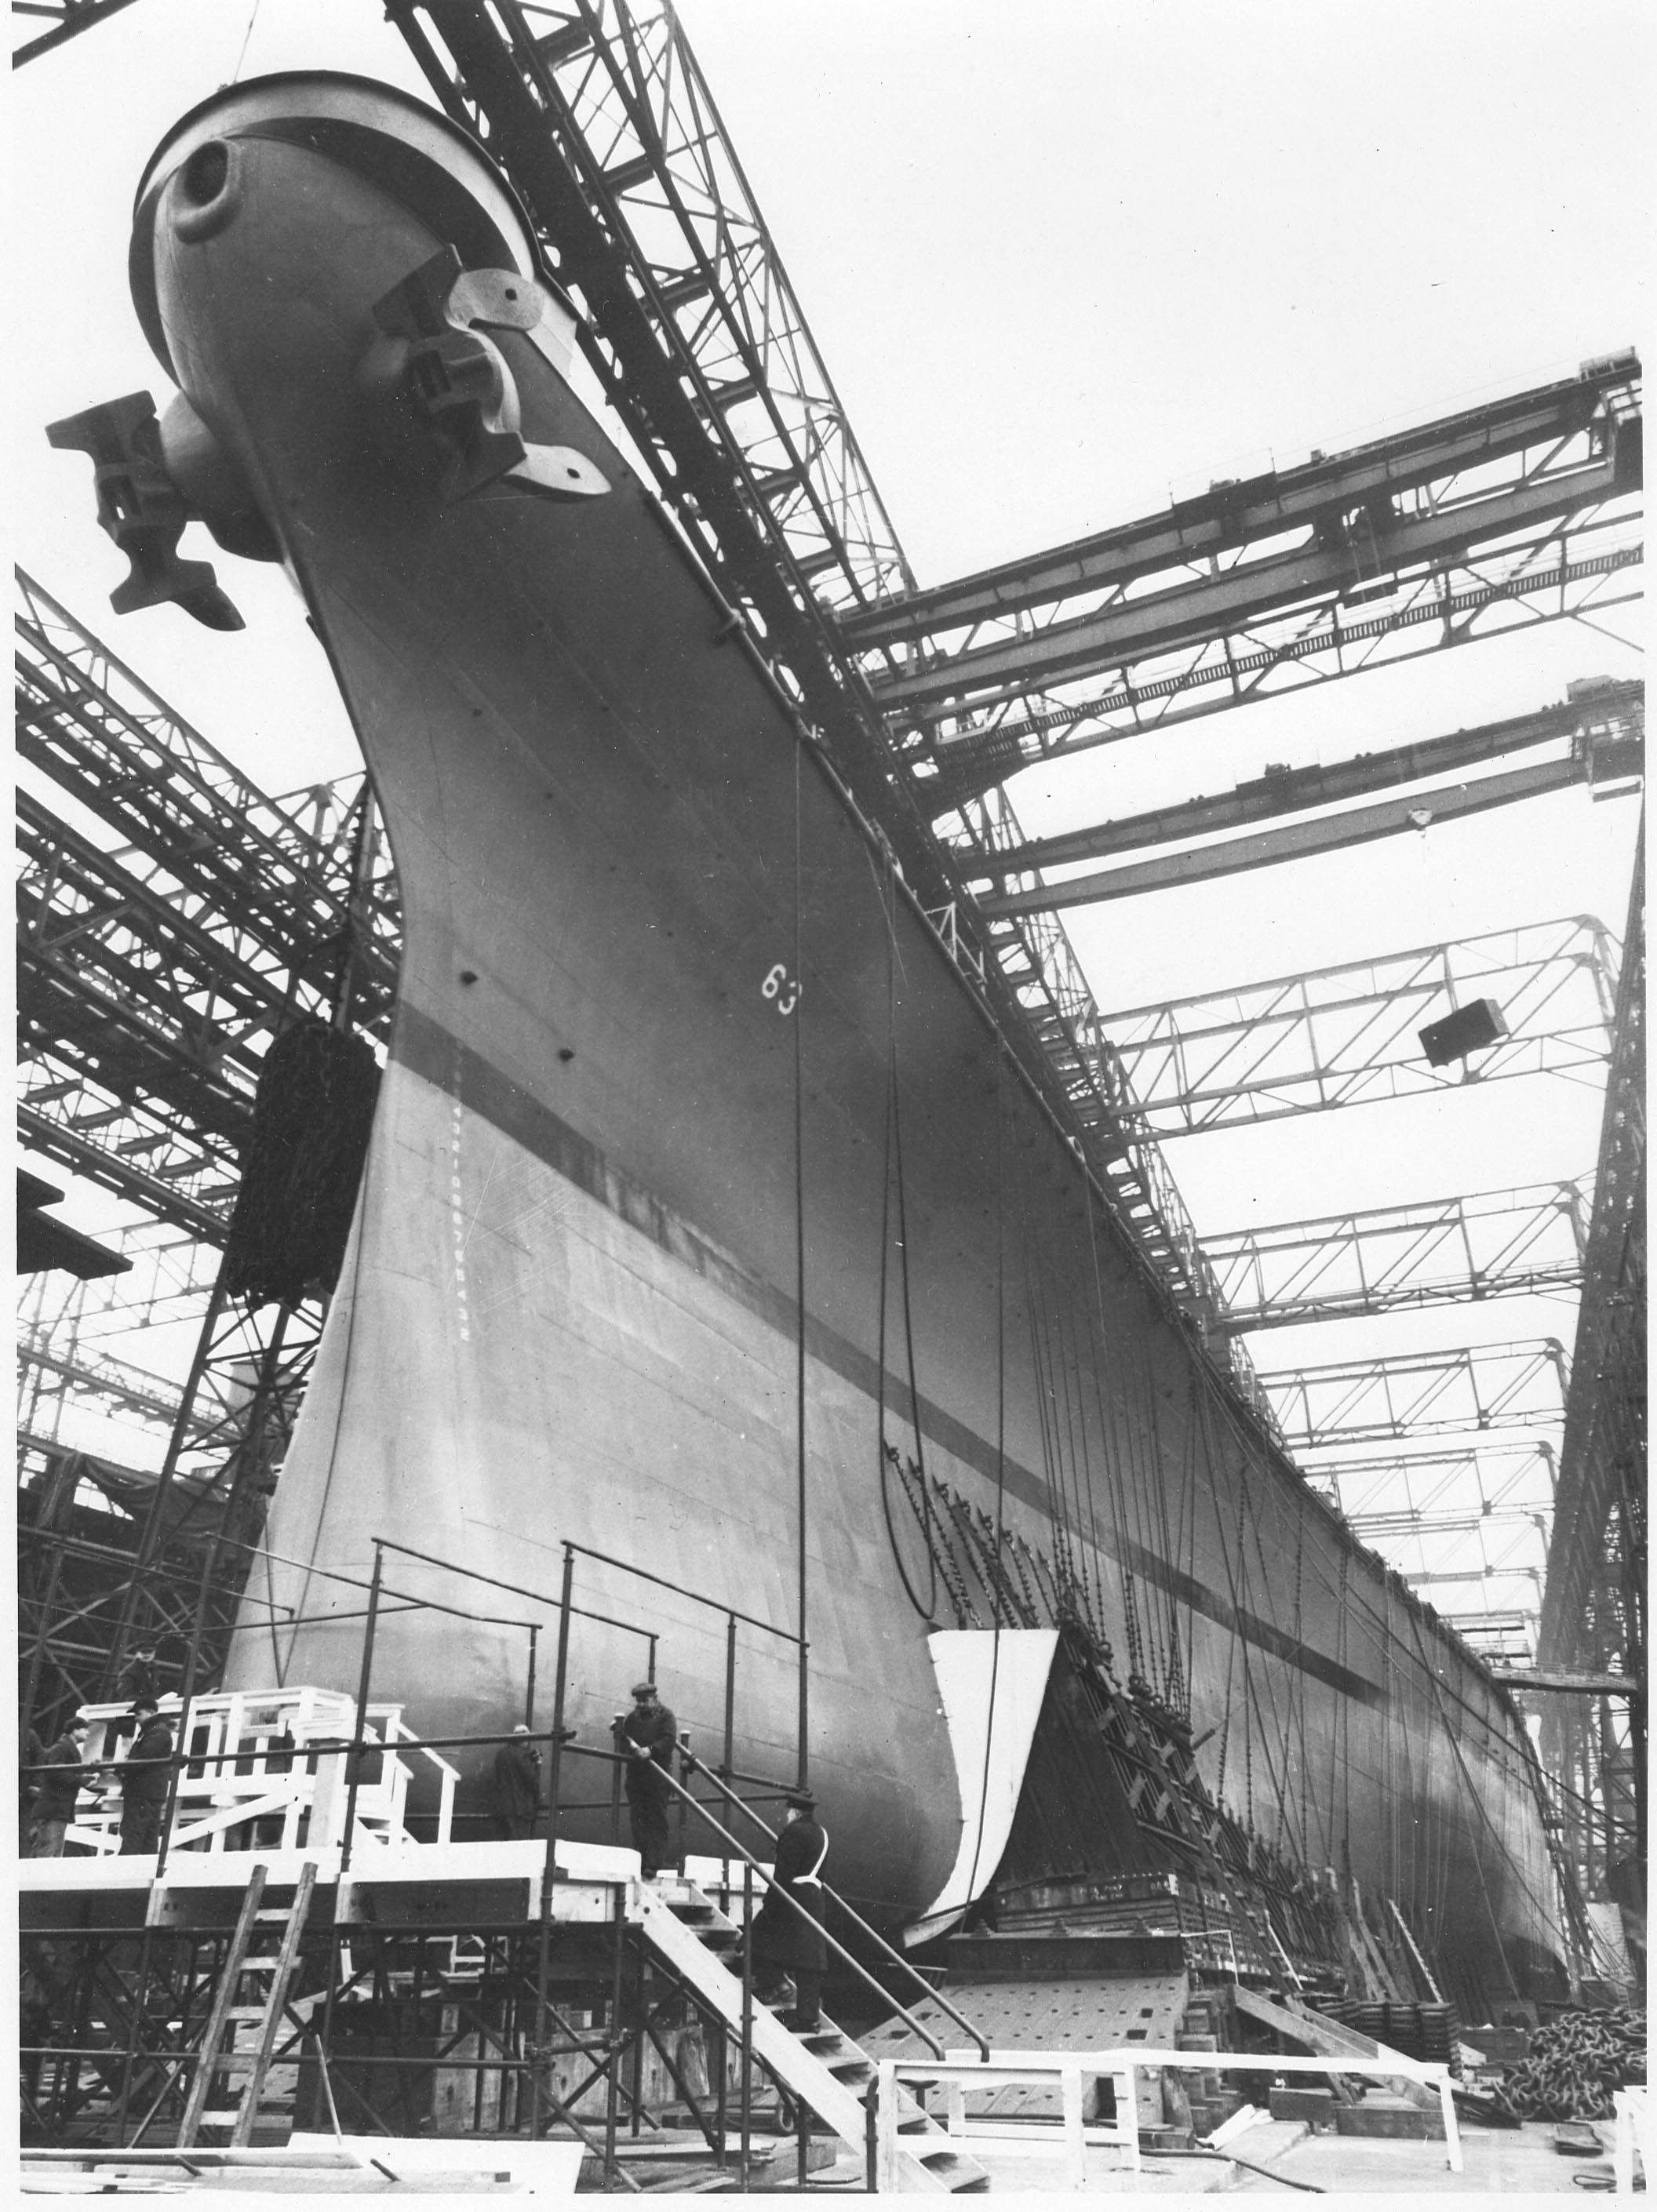 Early In The Day Of Battleship Missouri S Bb 63 Launch At The New York Navy Yard On 29 January 1944 Uss Missouri Us Navy Ships Battleship